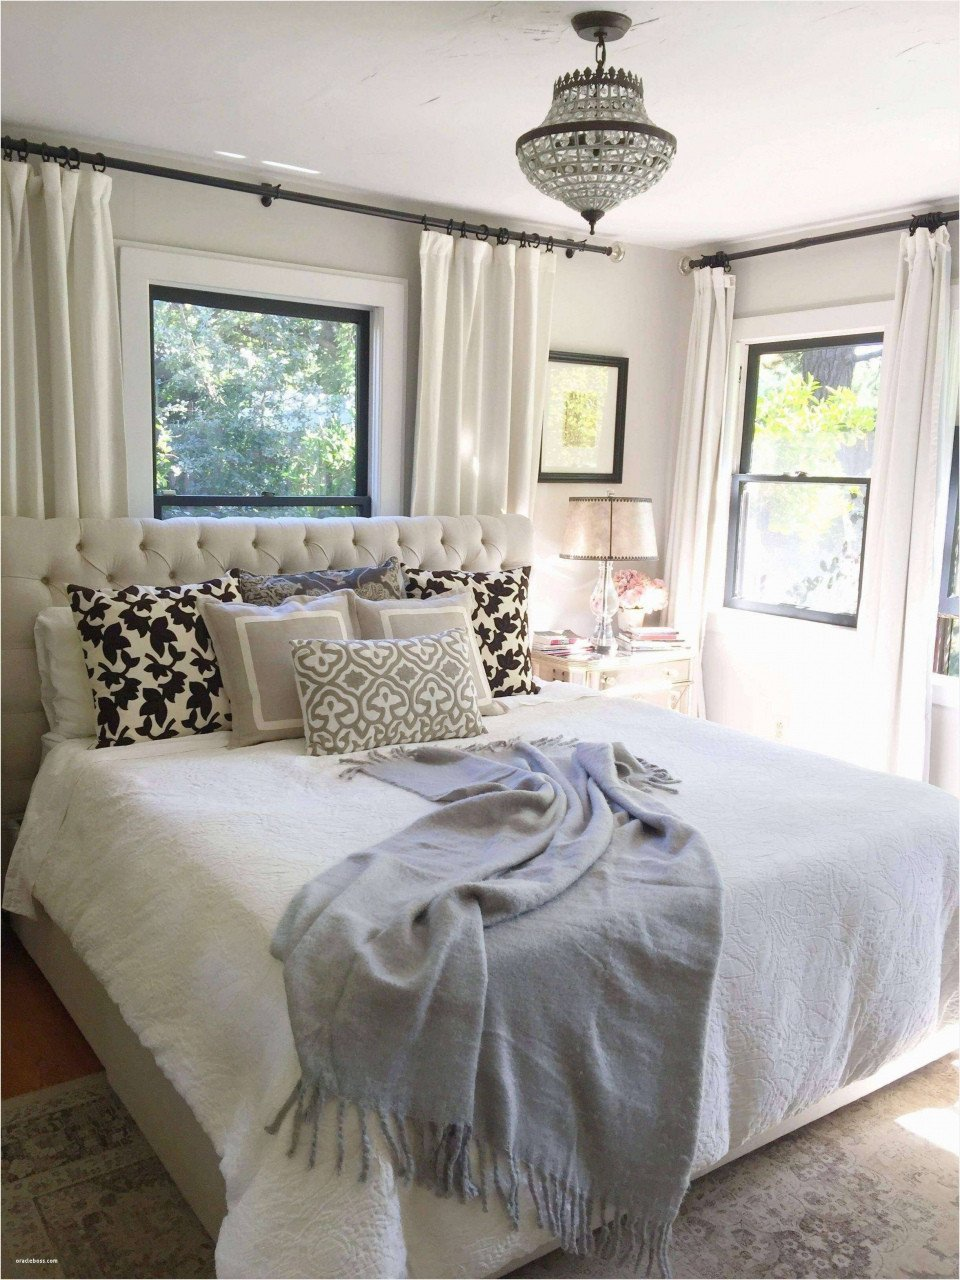 Tv Height In Bedroom New Bedroom Ideas for Couples — Procura Home Blog